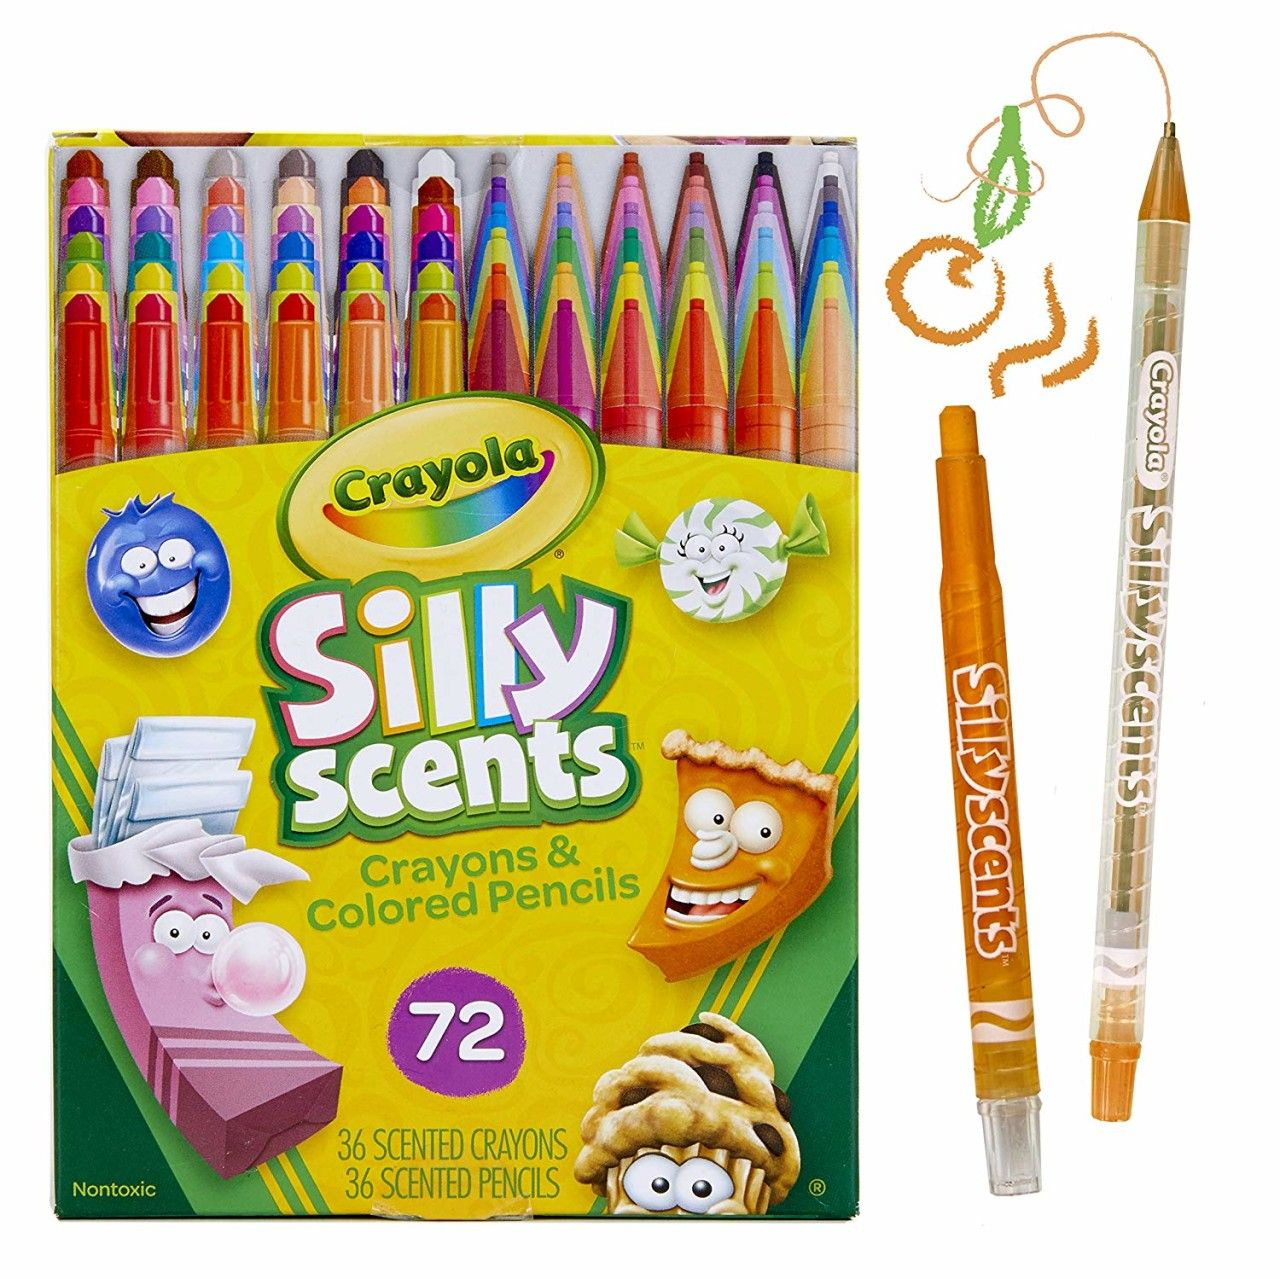 Crayola Silly Scents Twistables Scented Crayons Pencils 72 Count Only 11 84 Become A Coupon Queen Crayon Crayola Crayola Crayon Melter